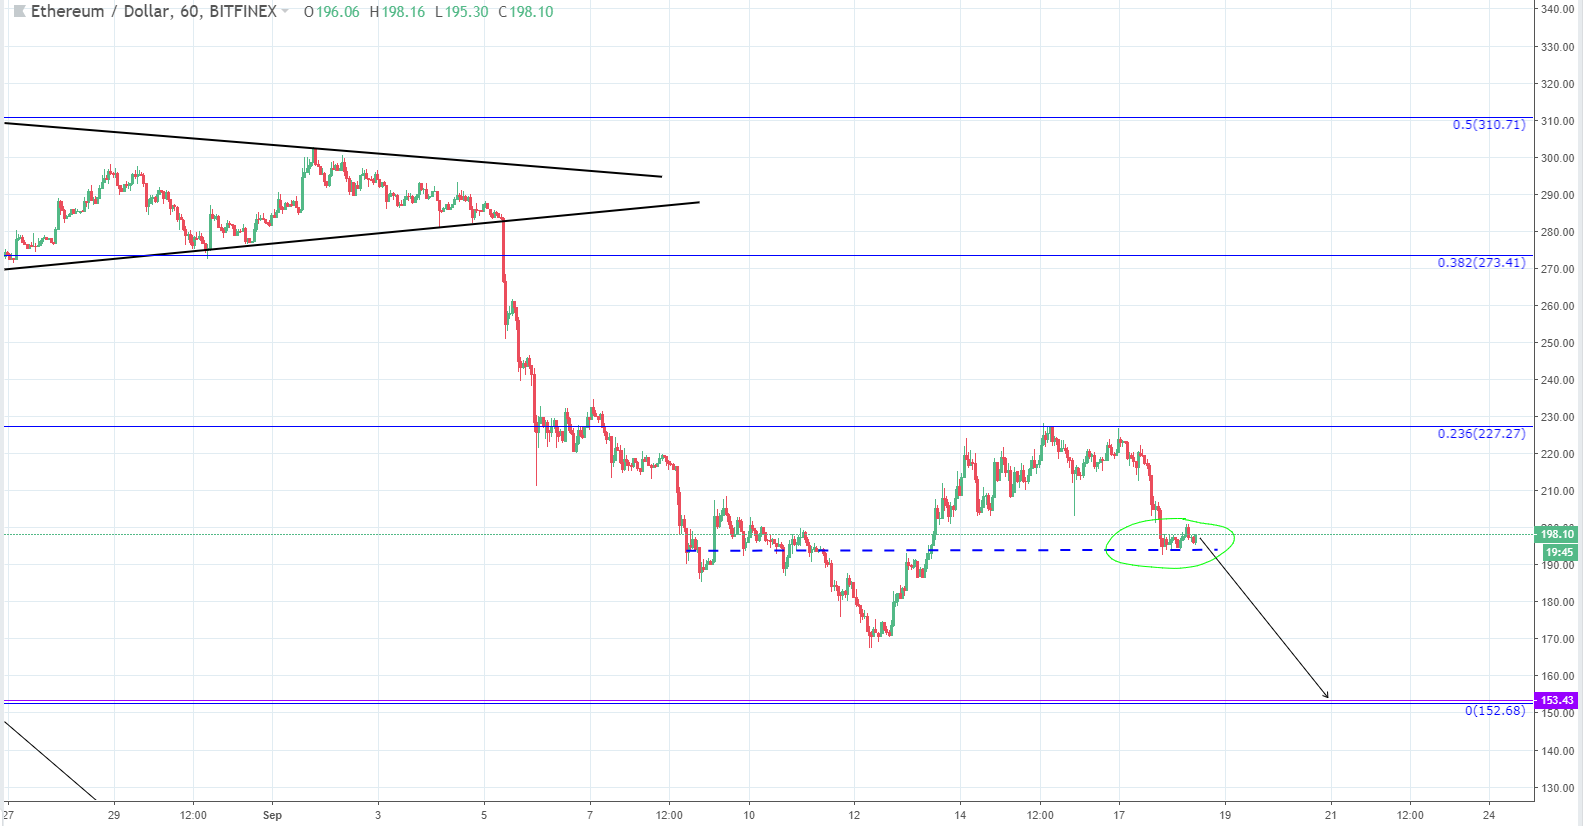 Bitcoin Price Watch: BTC/USD Preparing for Next Upside Wave